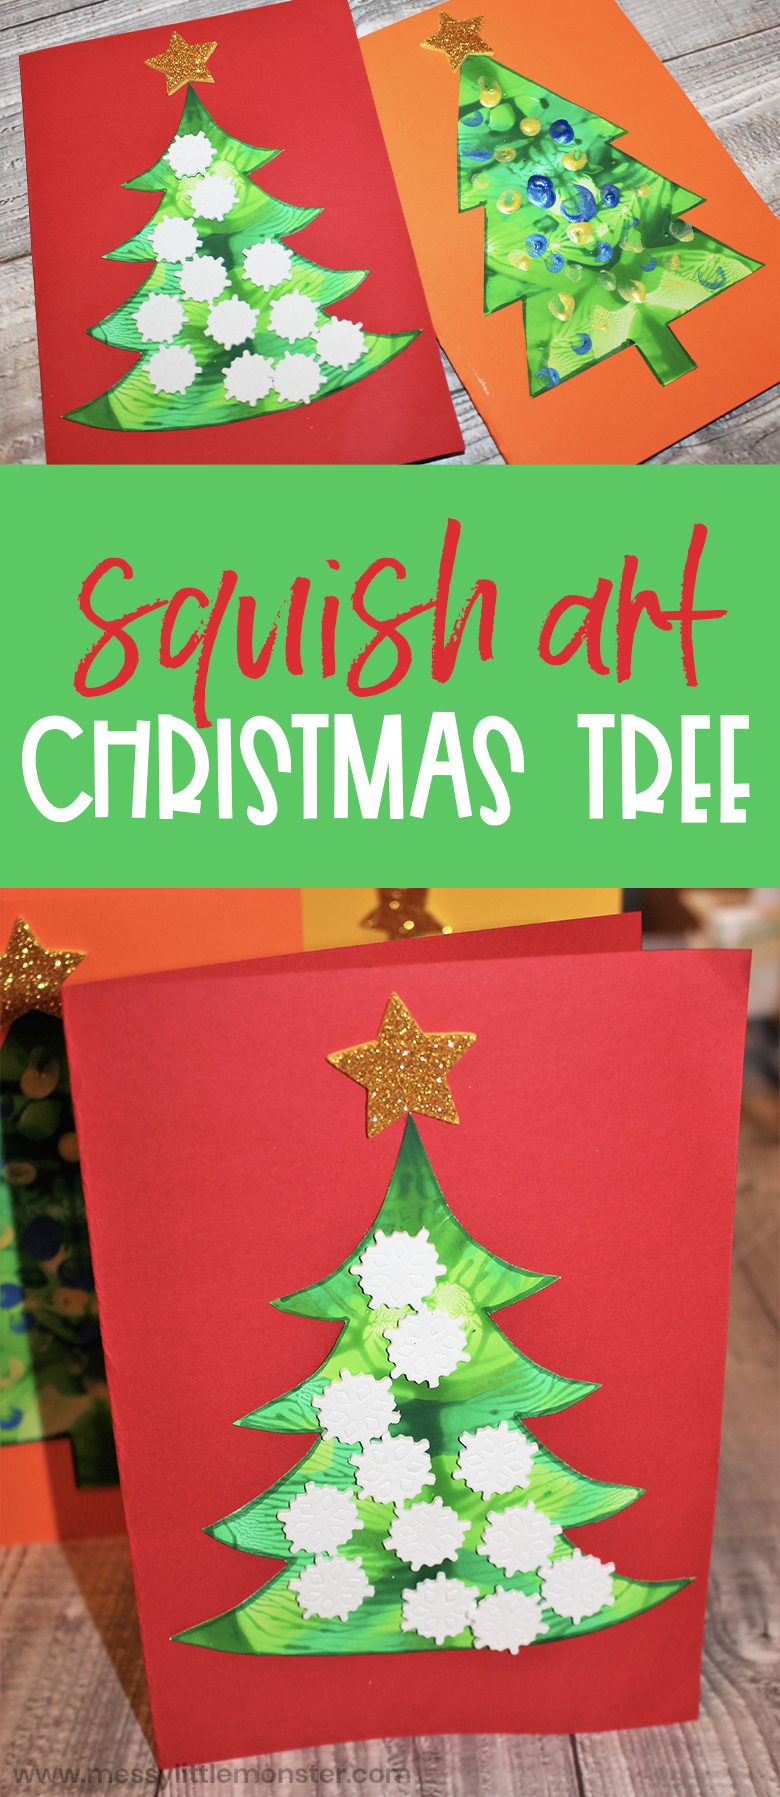 Squish art Christmas tree craft for kids. Fun and easy Christmas craft for toddlers and preschoolers with Christmas tree template.